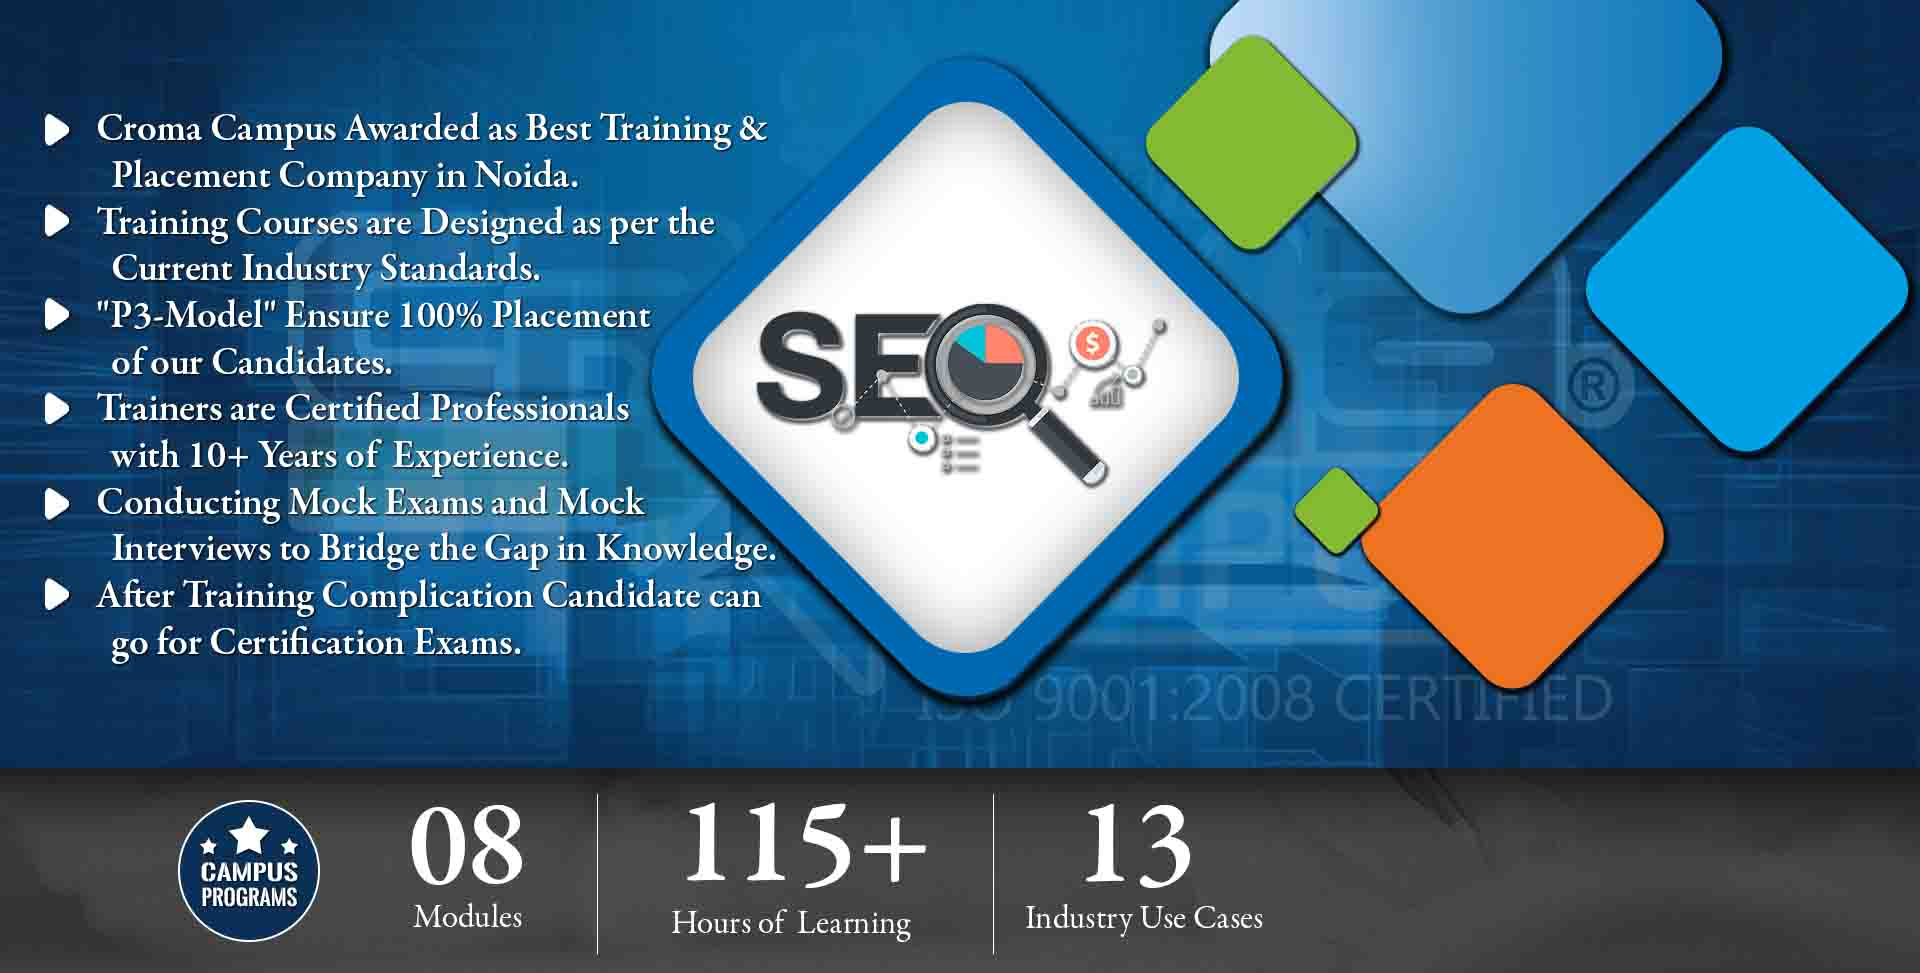 SEO Training in Delhi - Croma Campus